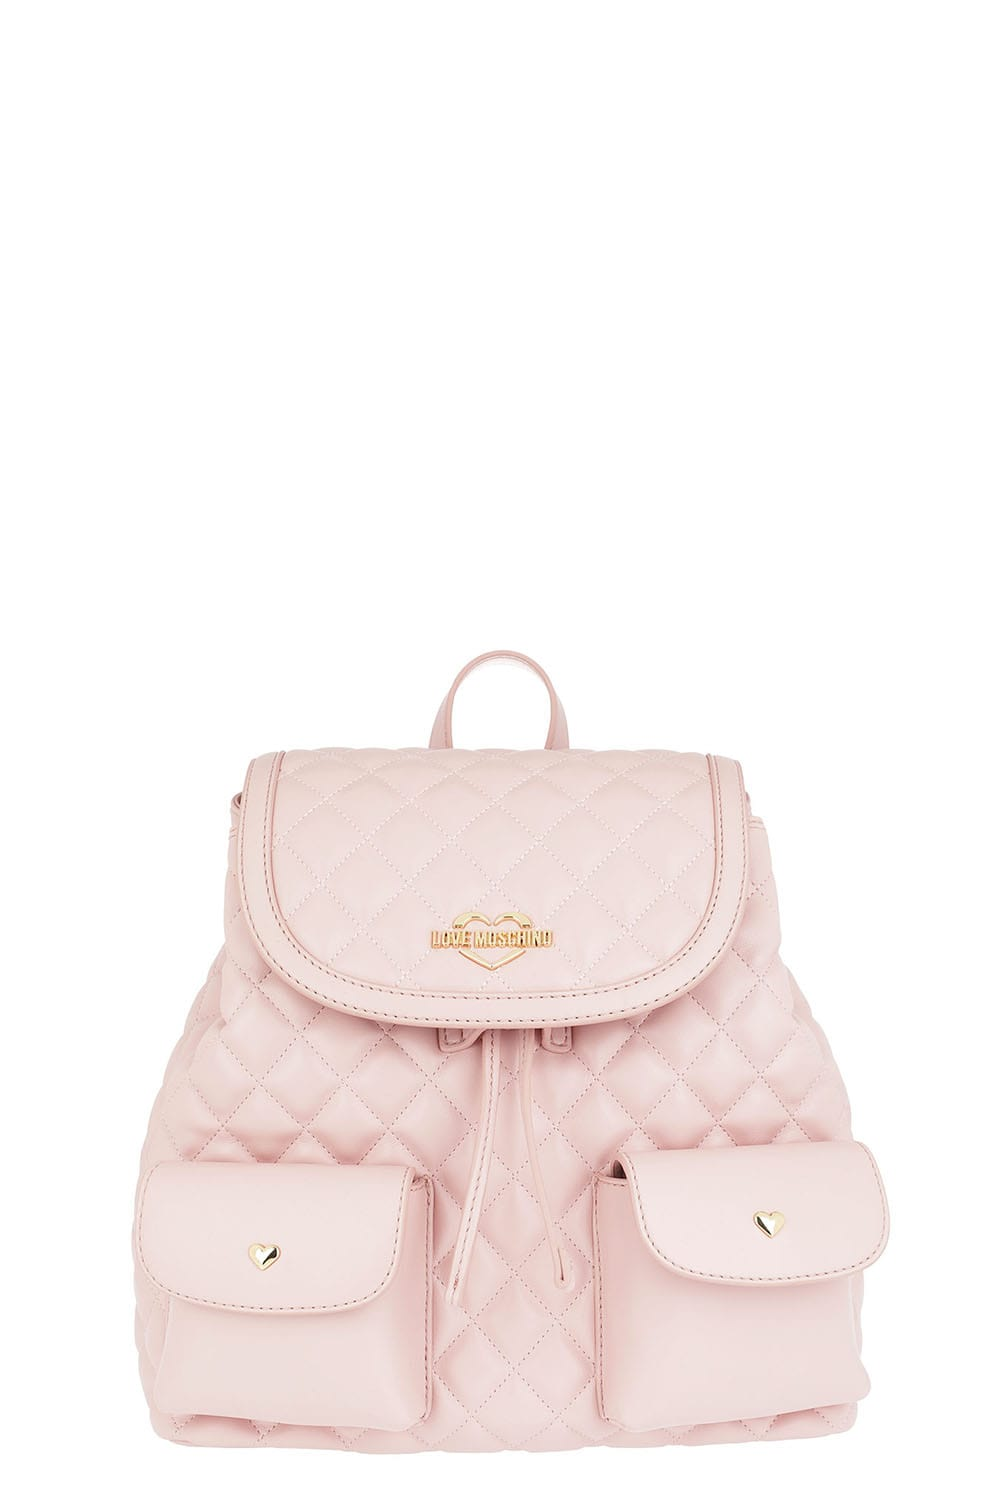 f152c0106d Backpack Love Moschino 014860